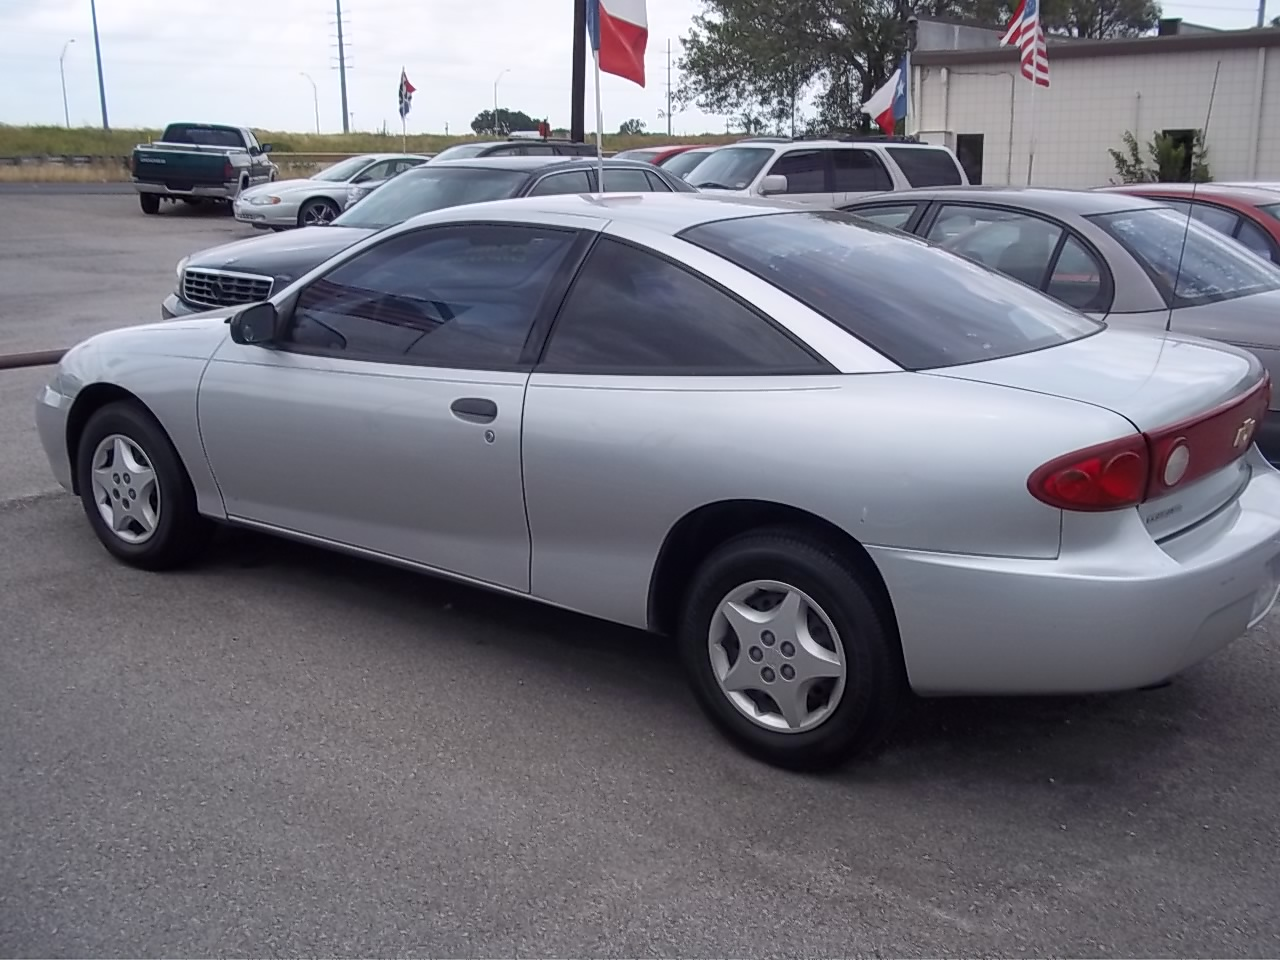 chevrolet 2004 chevrolet cavalier 2004 chevrolet cavalier image 6. Cars Review. Best American Auto & Cars Review